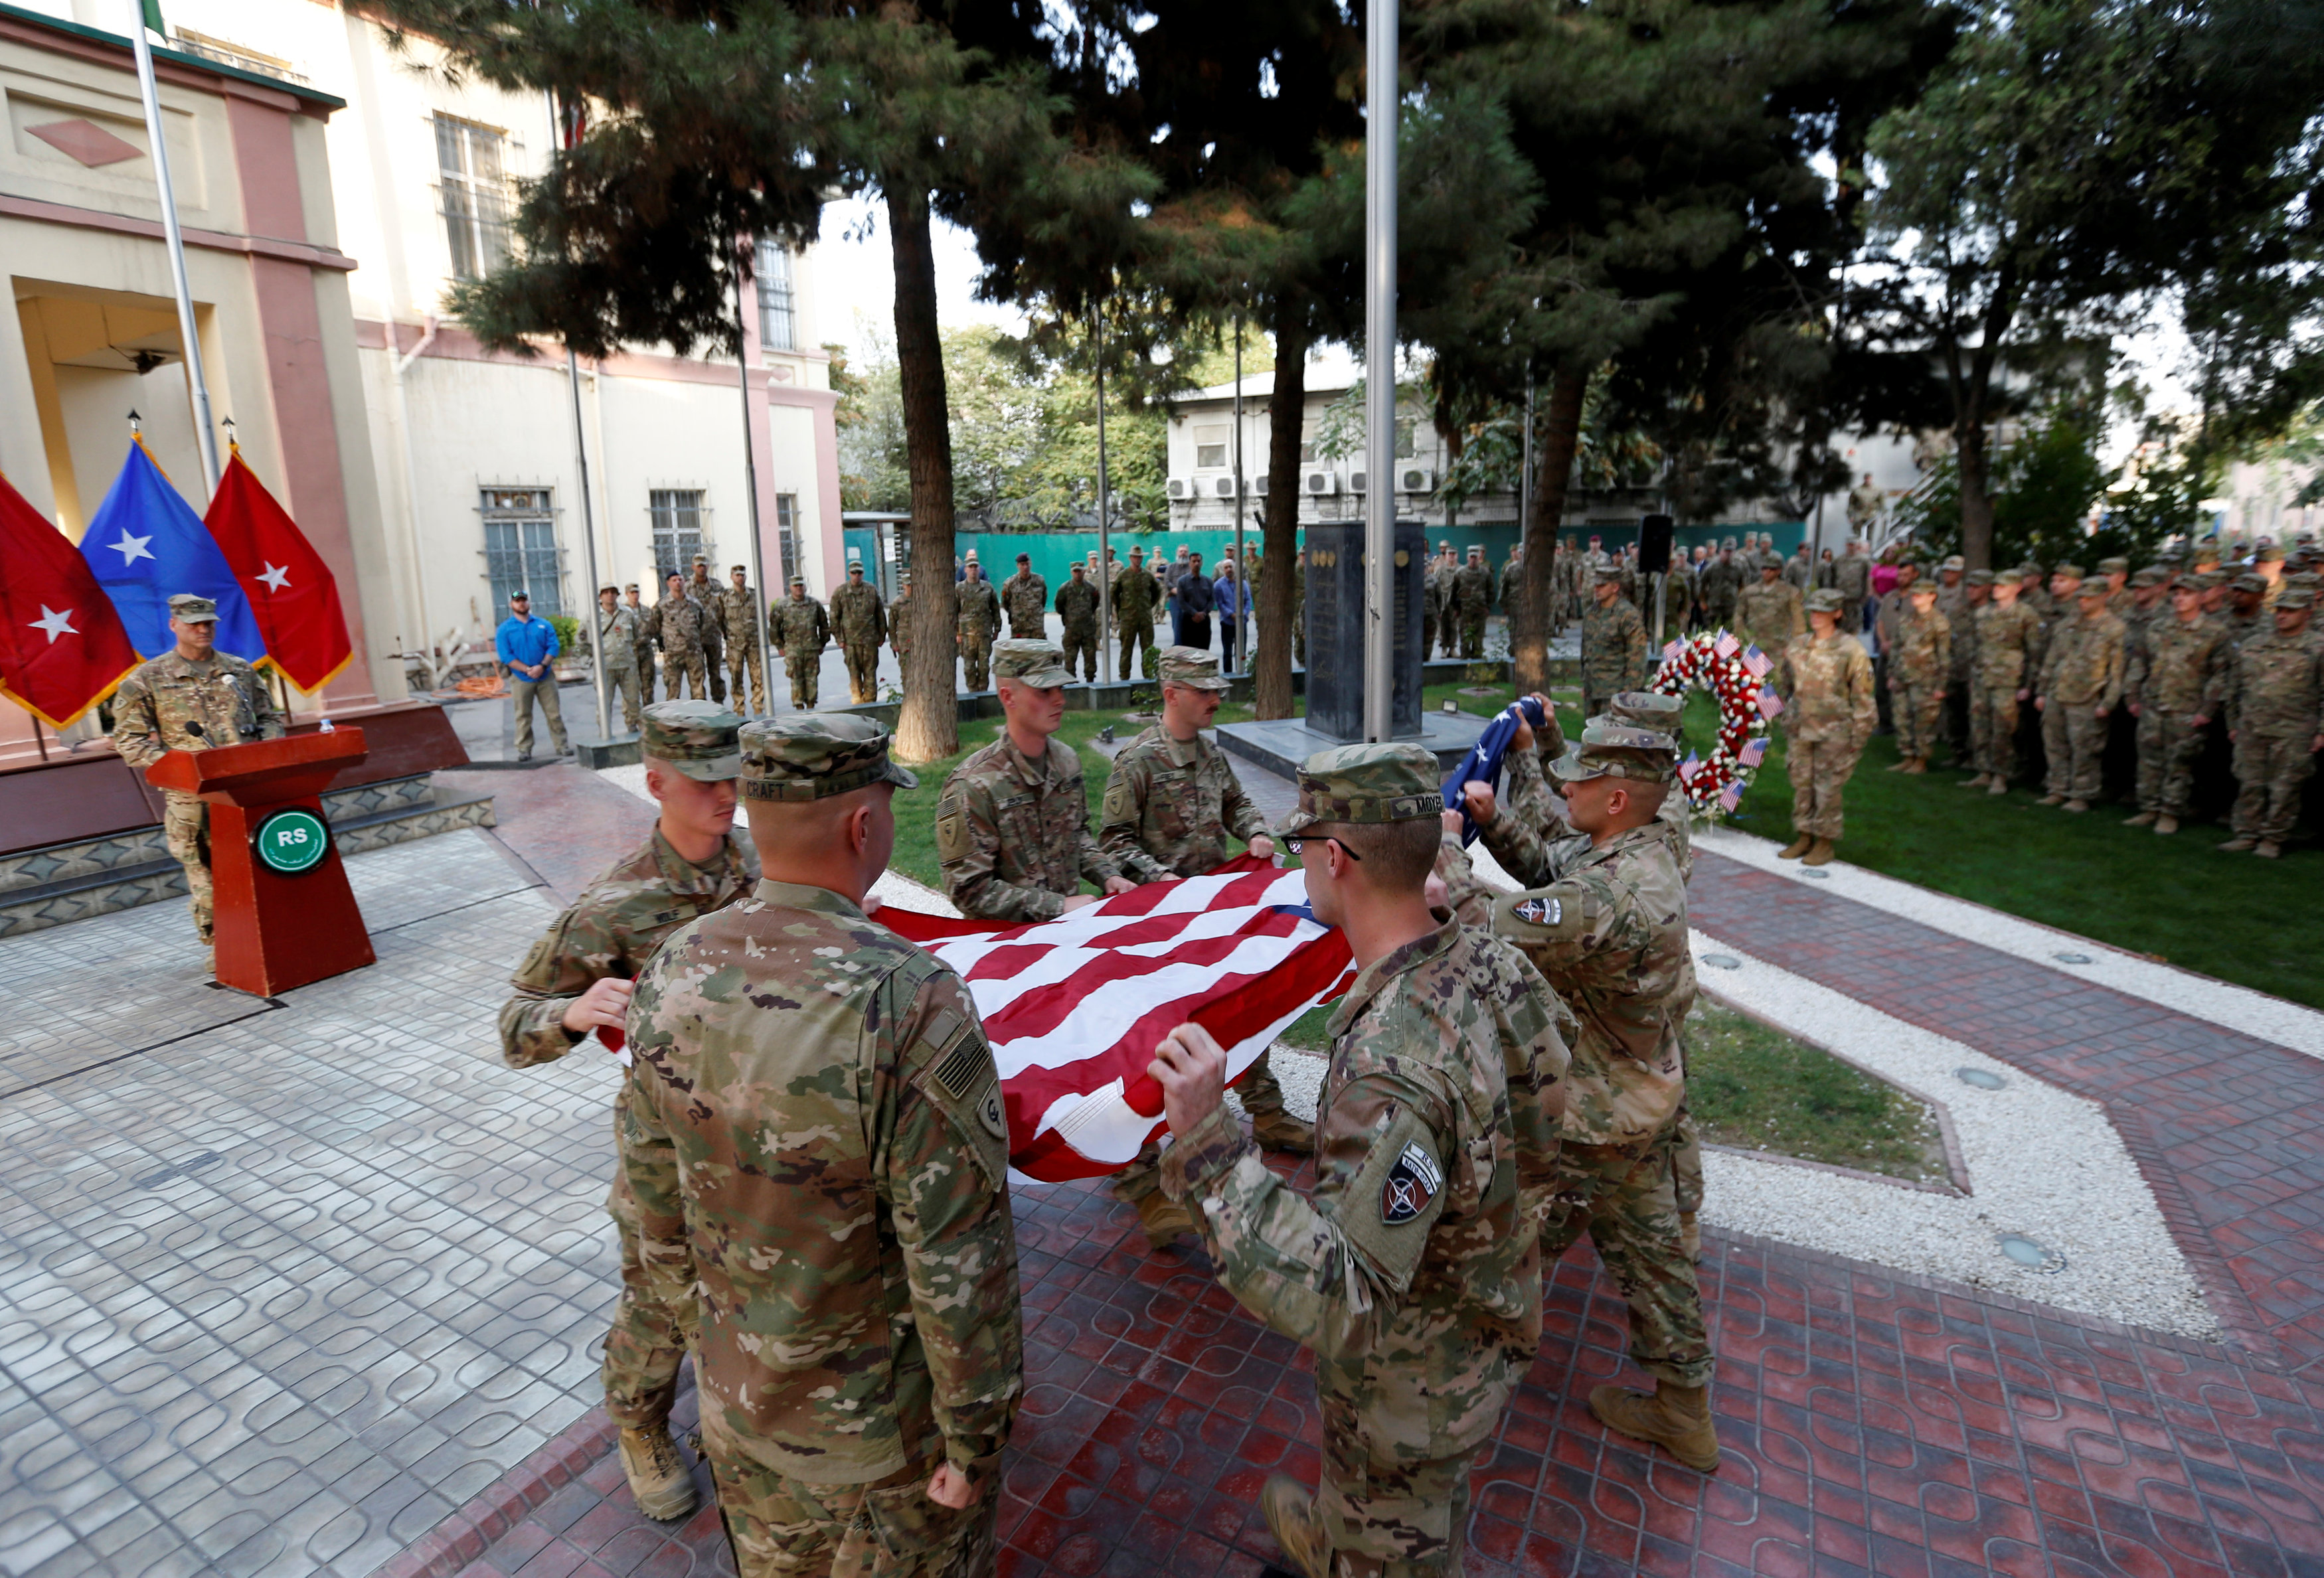 U.S. soldiers prepare to raise the American flag during a memorial ceremony to commemorate the 16th anniversary of the 9/11 attacks, in Kabul, Afghanistan on Sept. 11, 2017. (REUTERS/Mohammad Ismail)